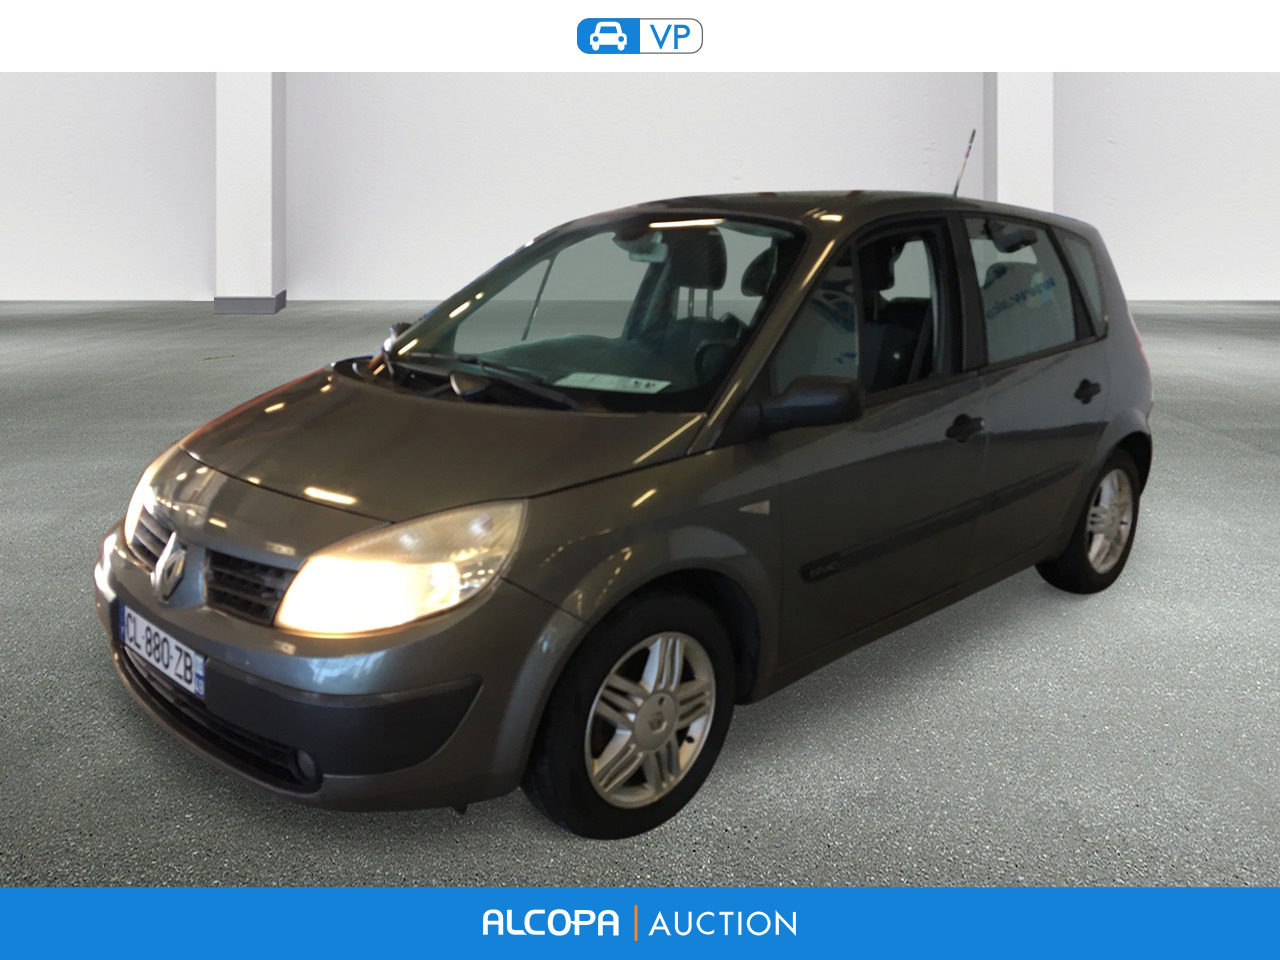 renault scenic scenic 1 9 dci 130 alcopa auction. Black Bedroom Furniture Sets. Home Design Ideas